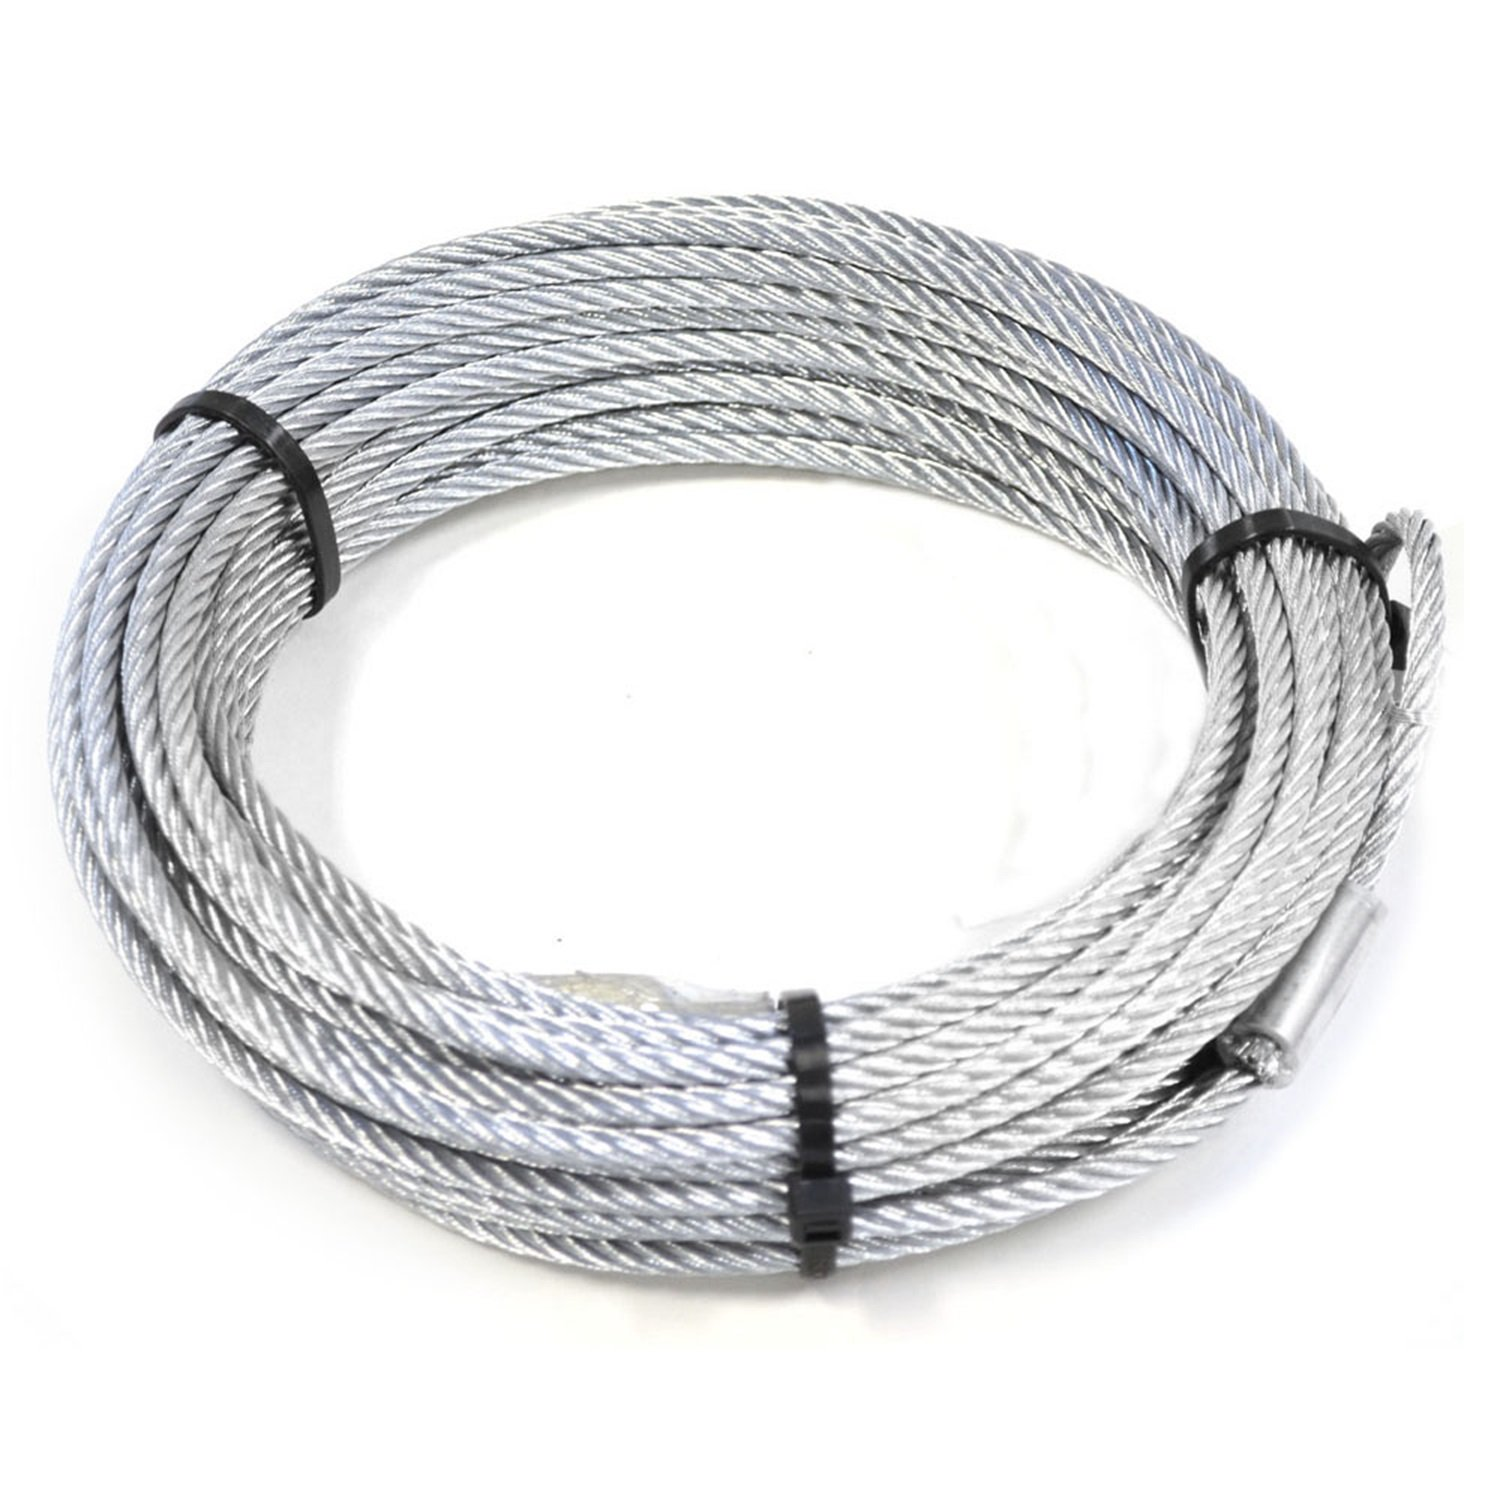 WARN 15236 Replacement Wire Winch Rope by WARN